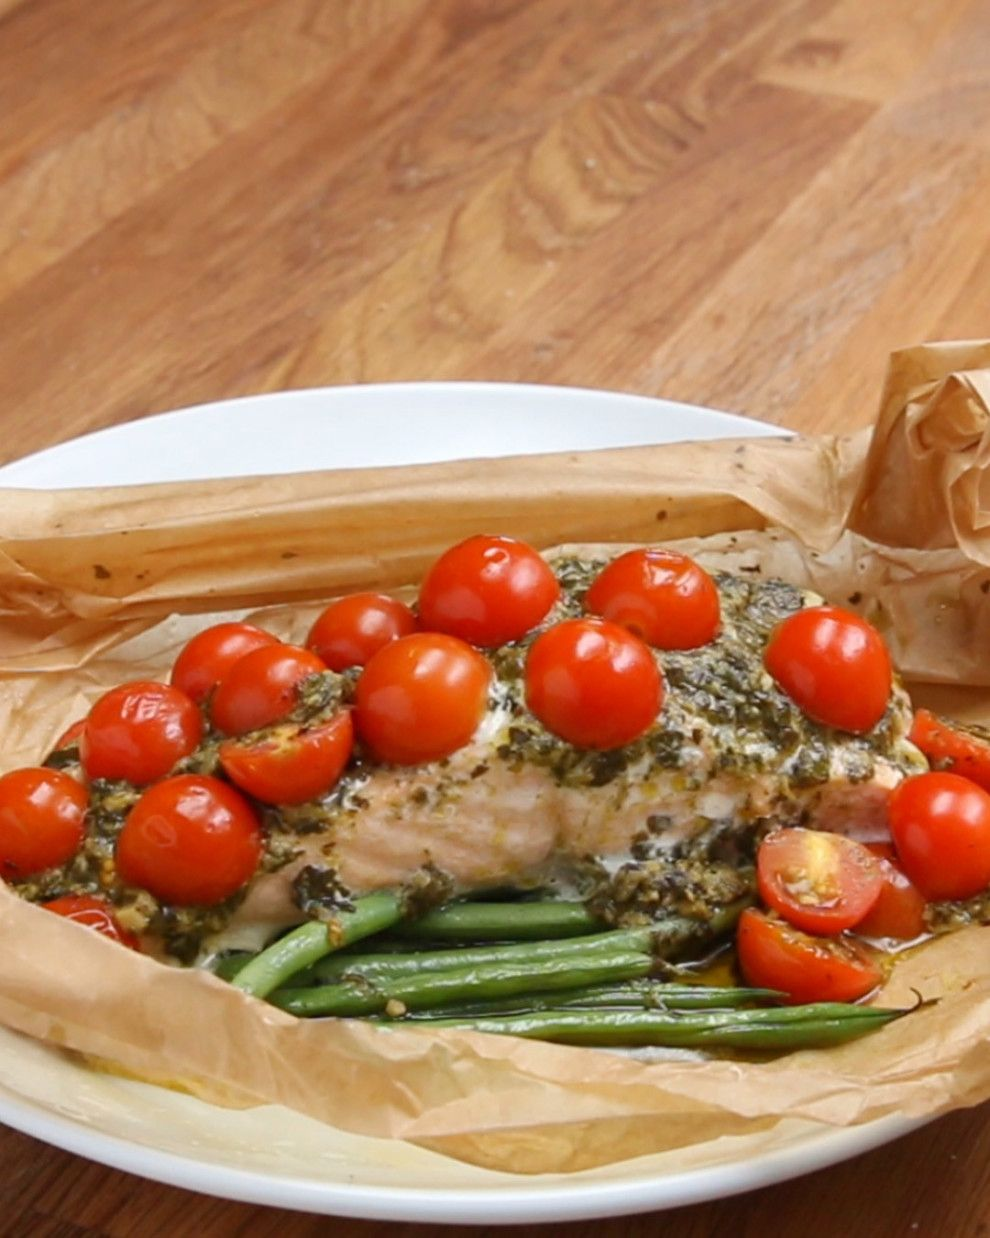 Tomato Pesto Salmon  Here's Four Different Ways To Make Salmon For Dinner  This Week Easy